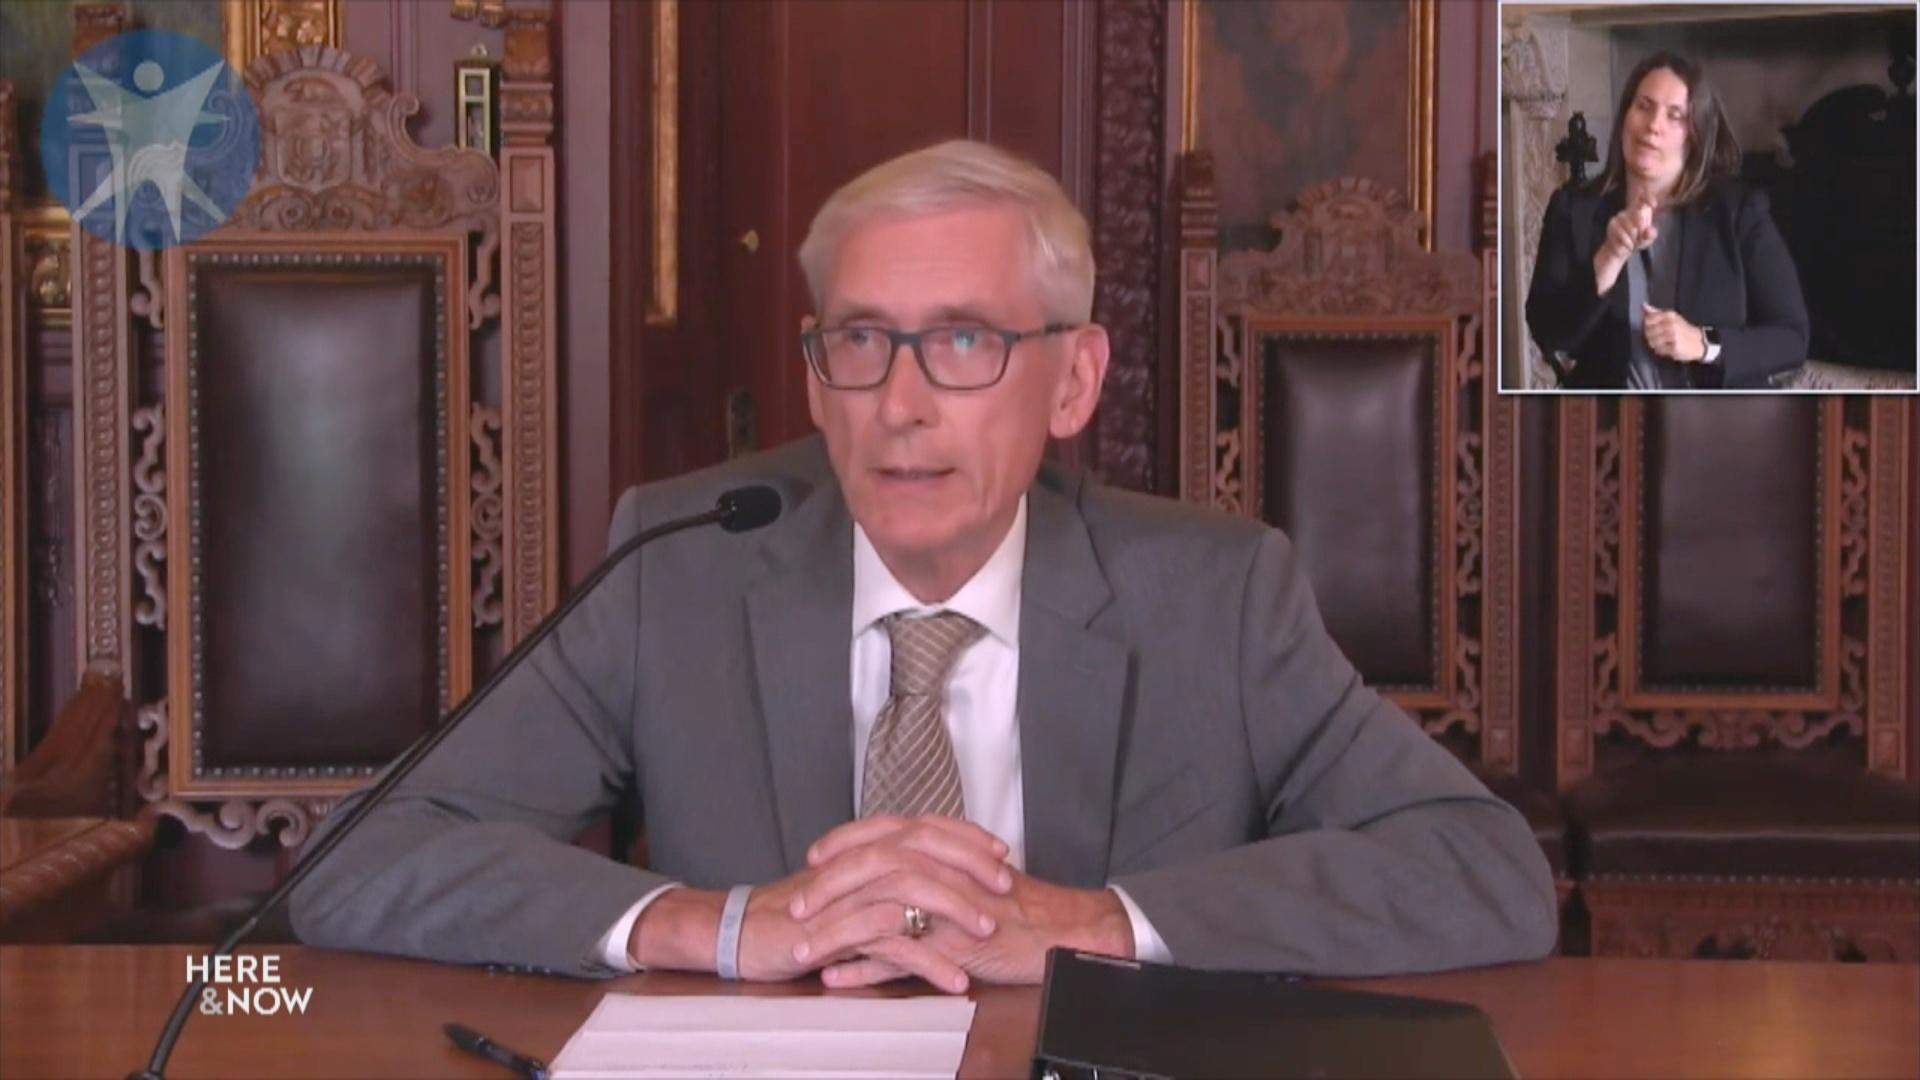 Evers Administration Under Fire for Recording of Meeting